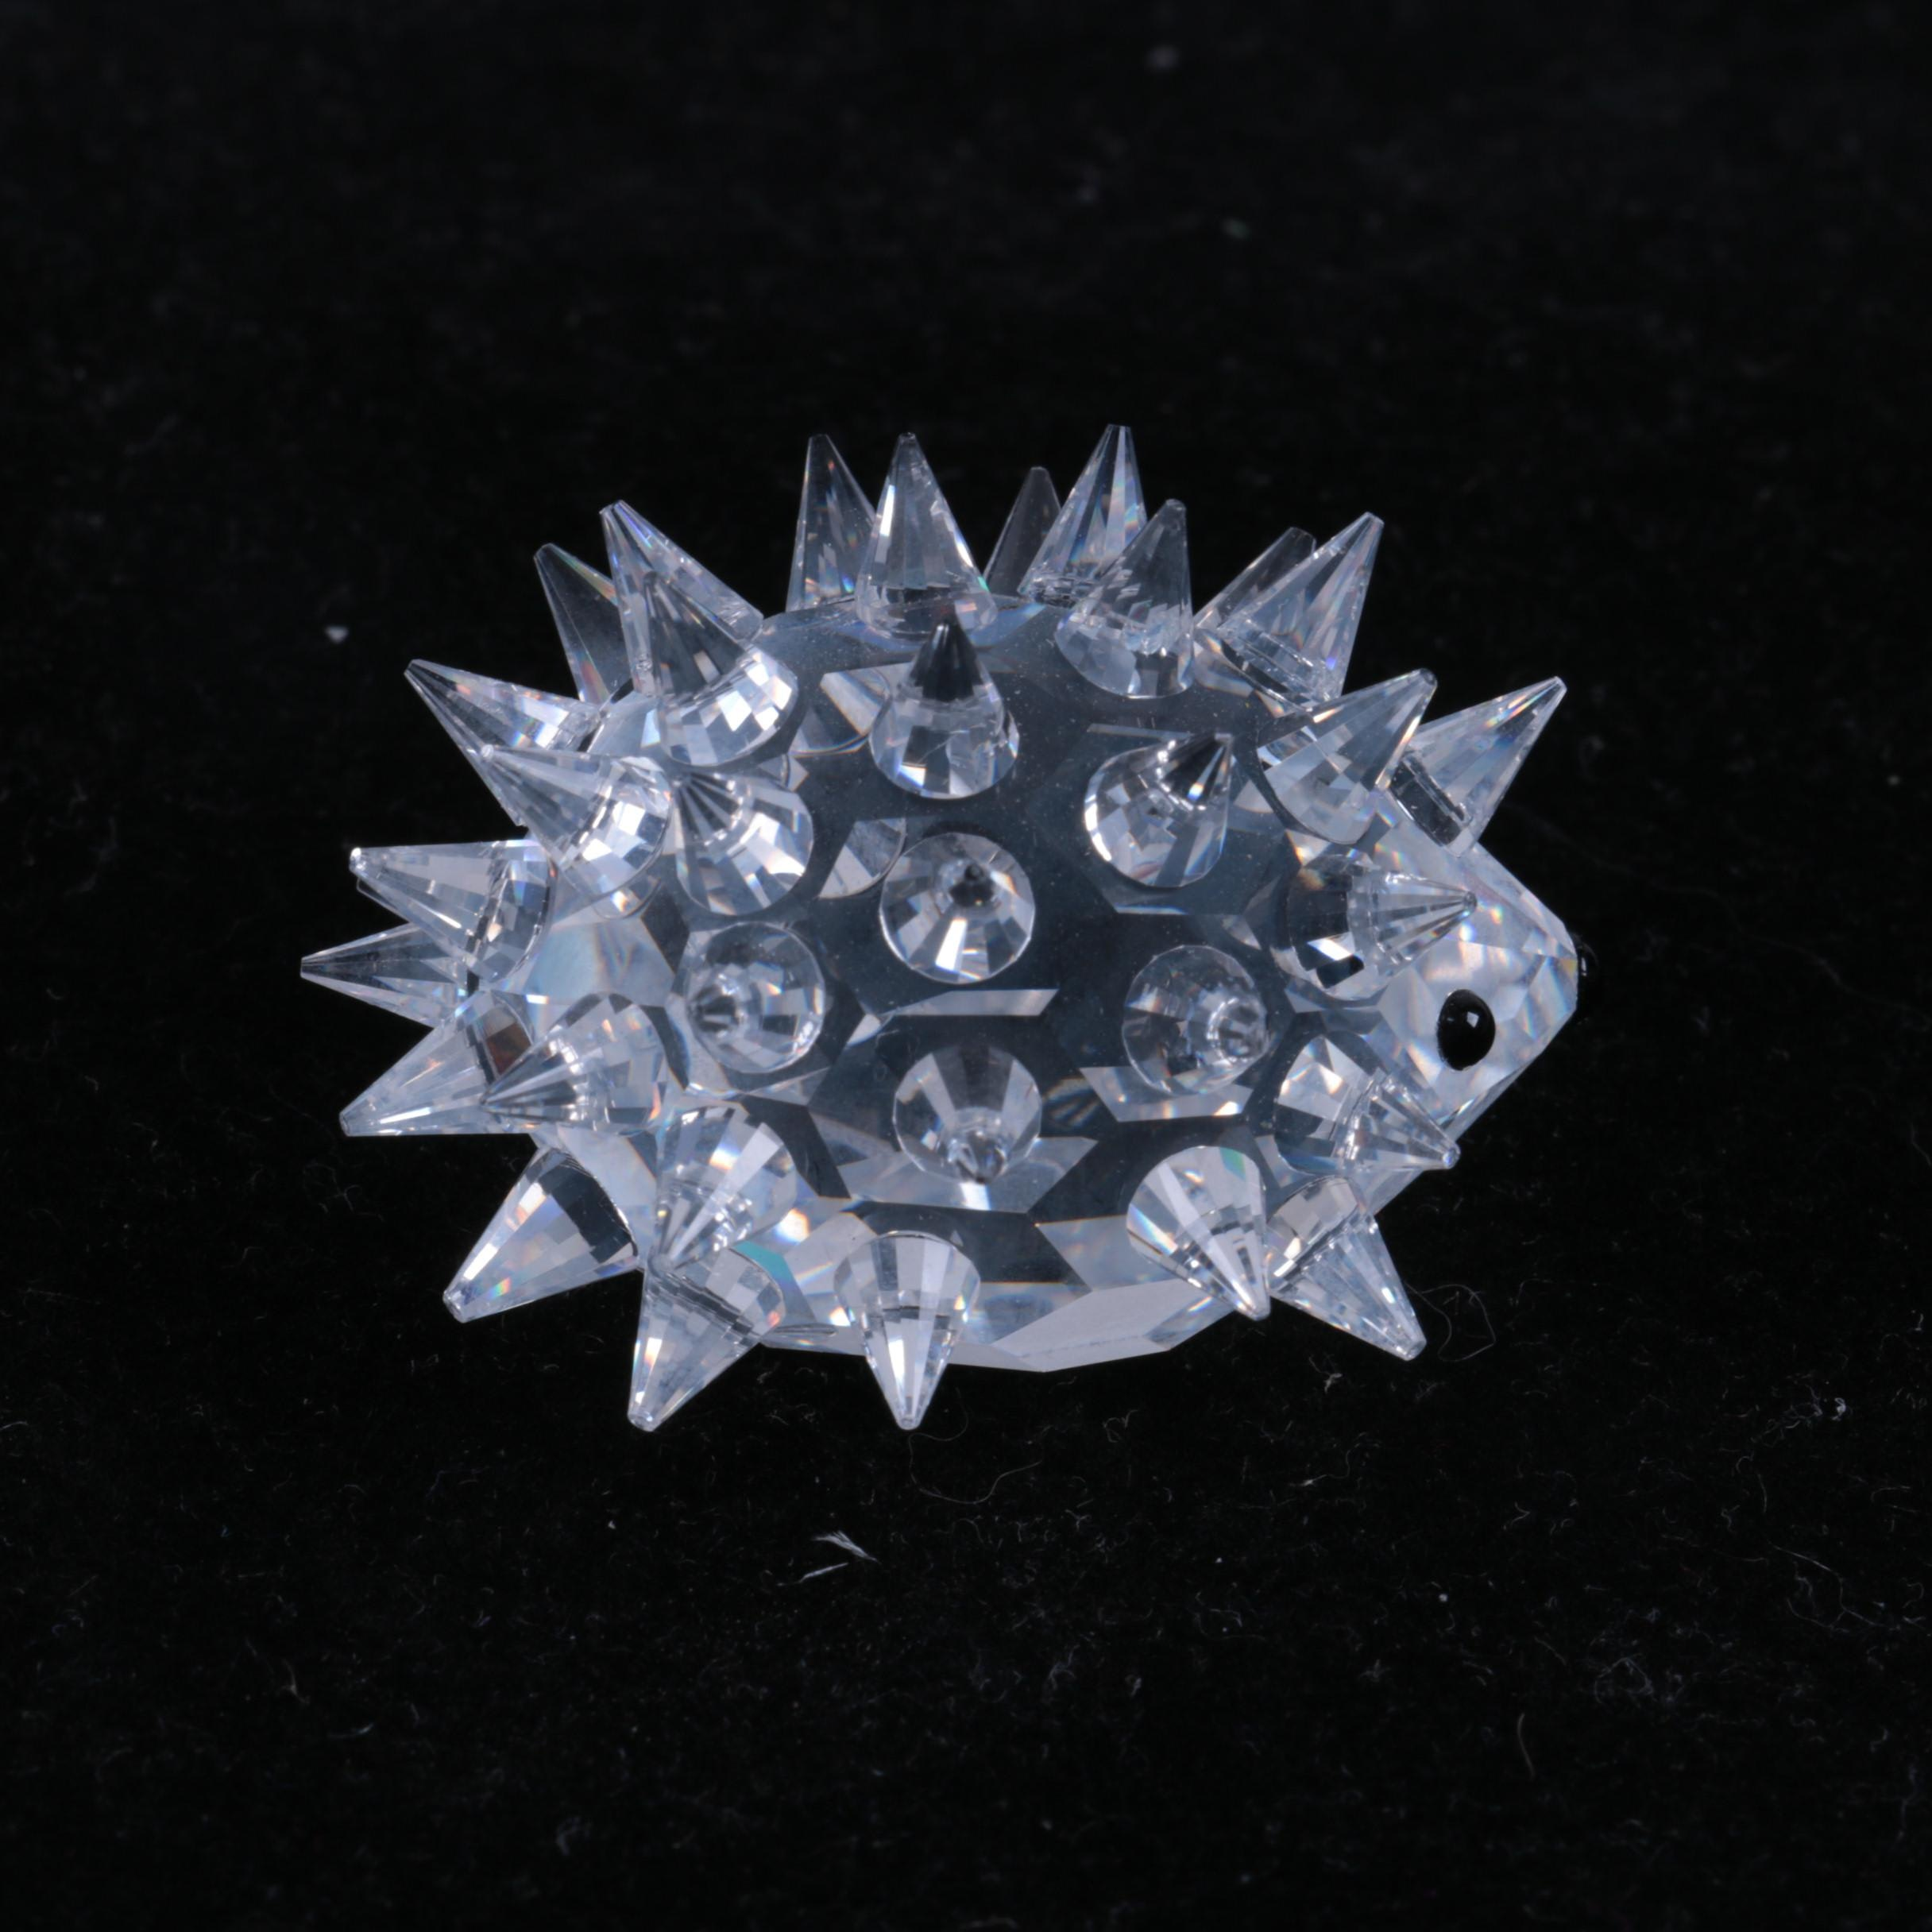 Swarovski Crystal Hedgehog Figurine